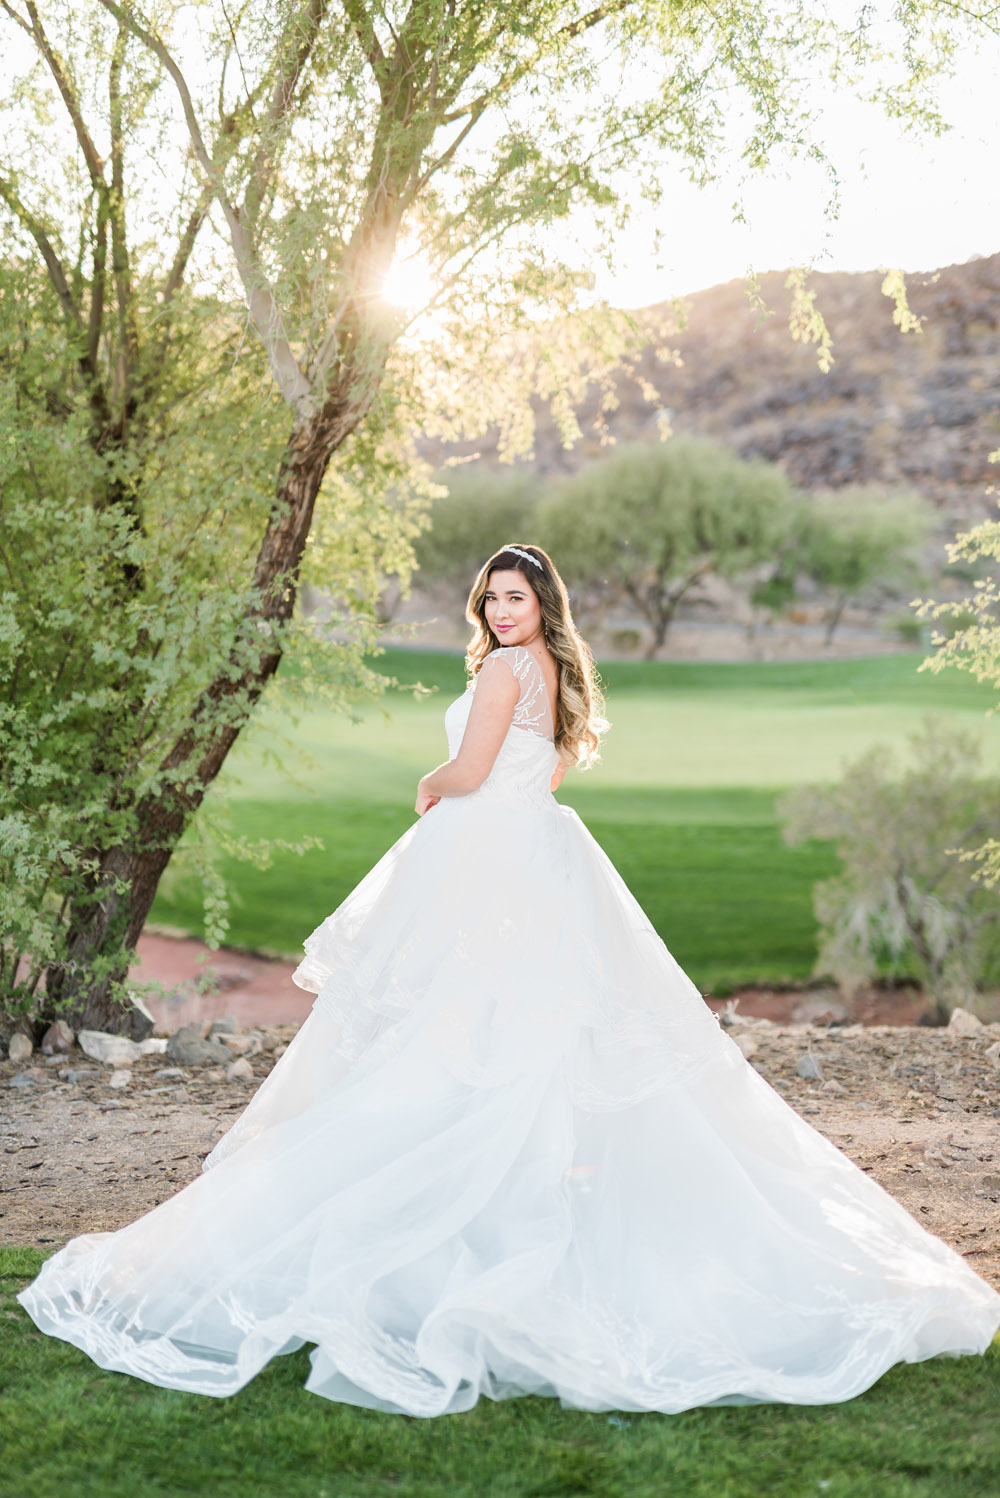 DragonRidge Country Club Wedding | Kristen Marie Weddings + Portraits | Las Vegas Wedding Photographer